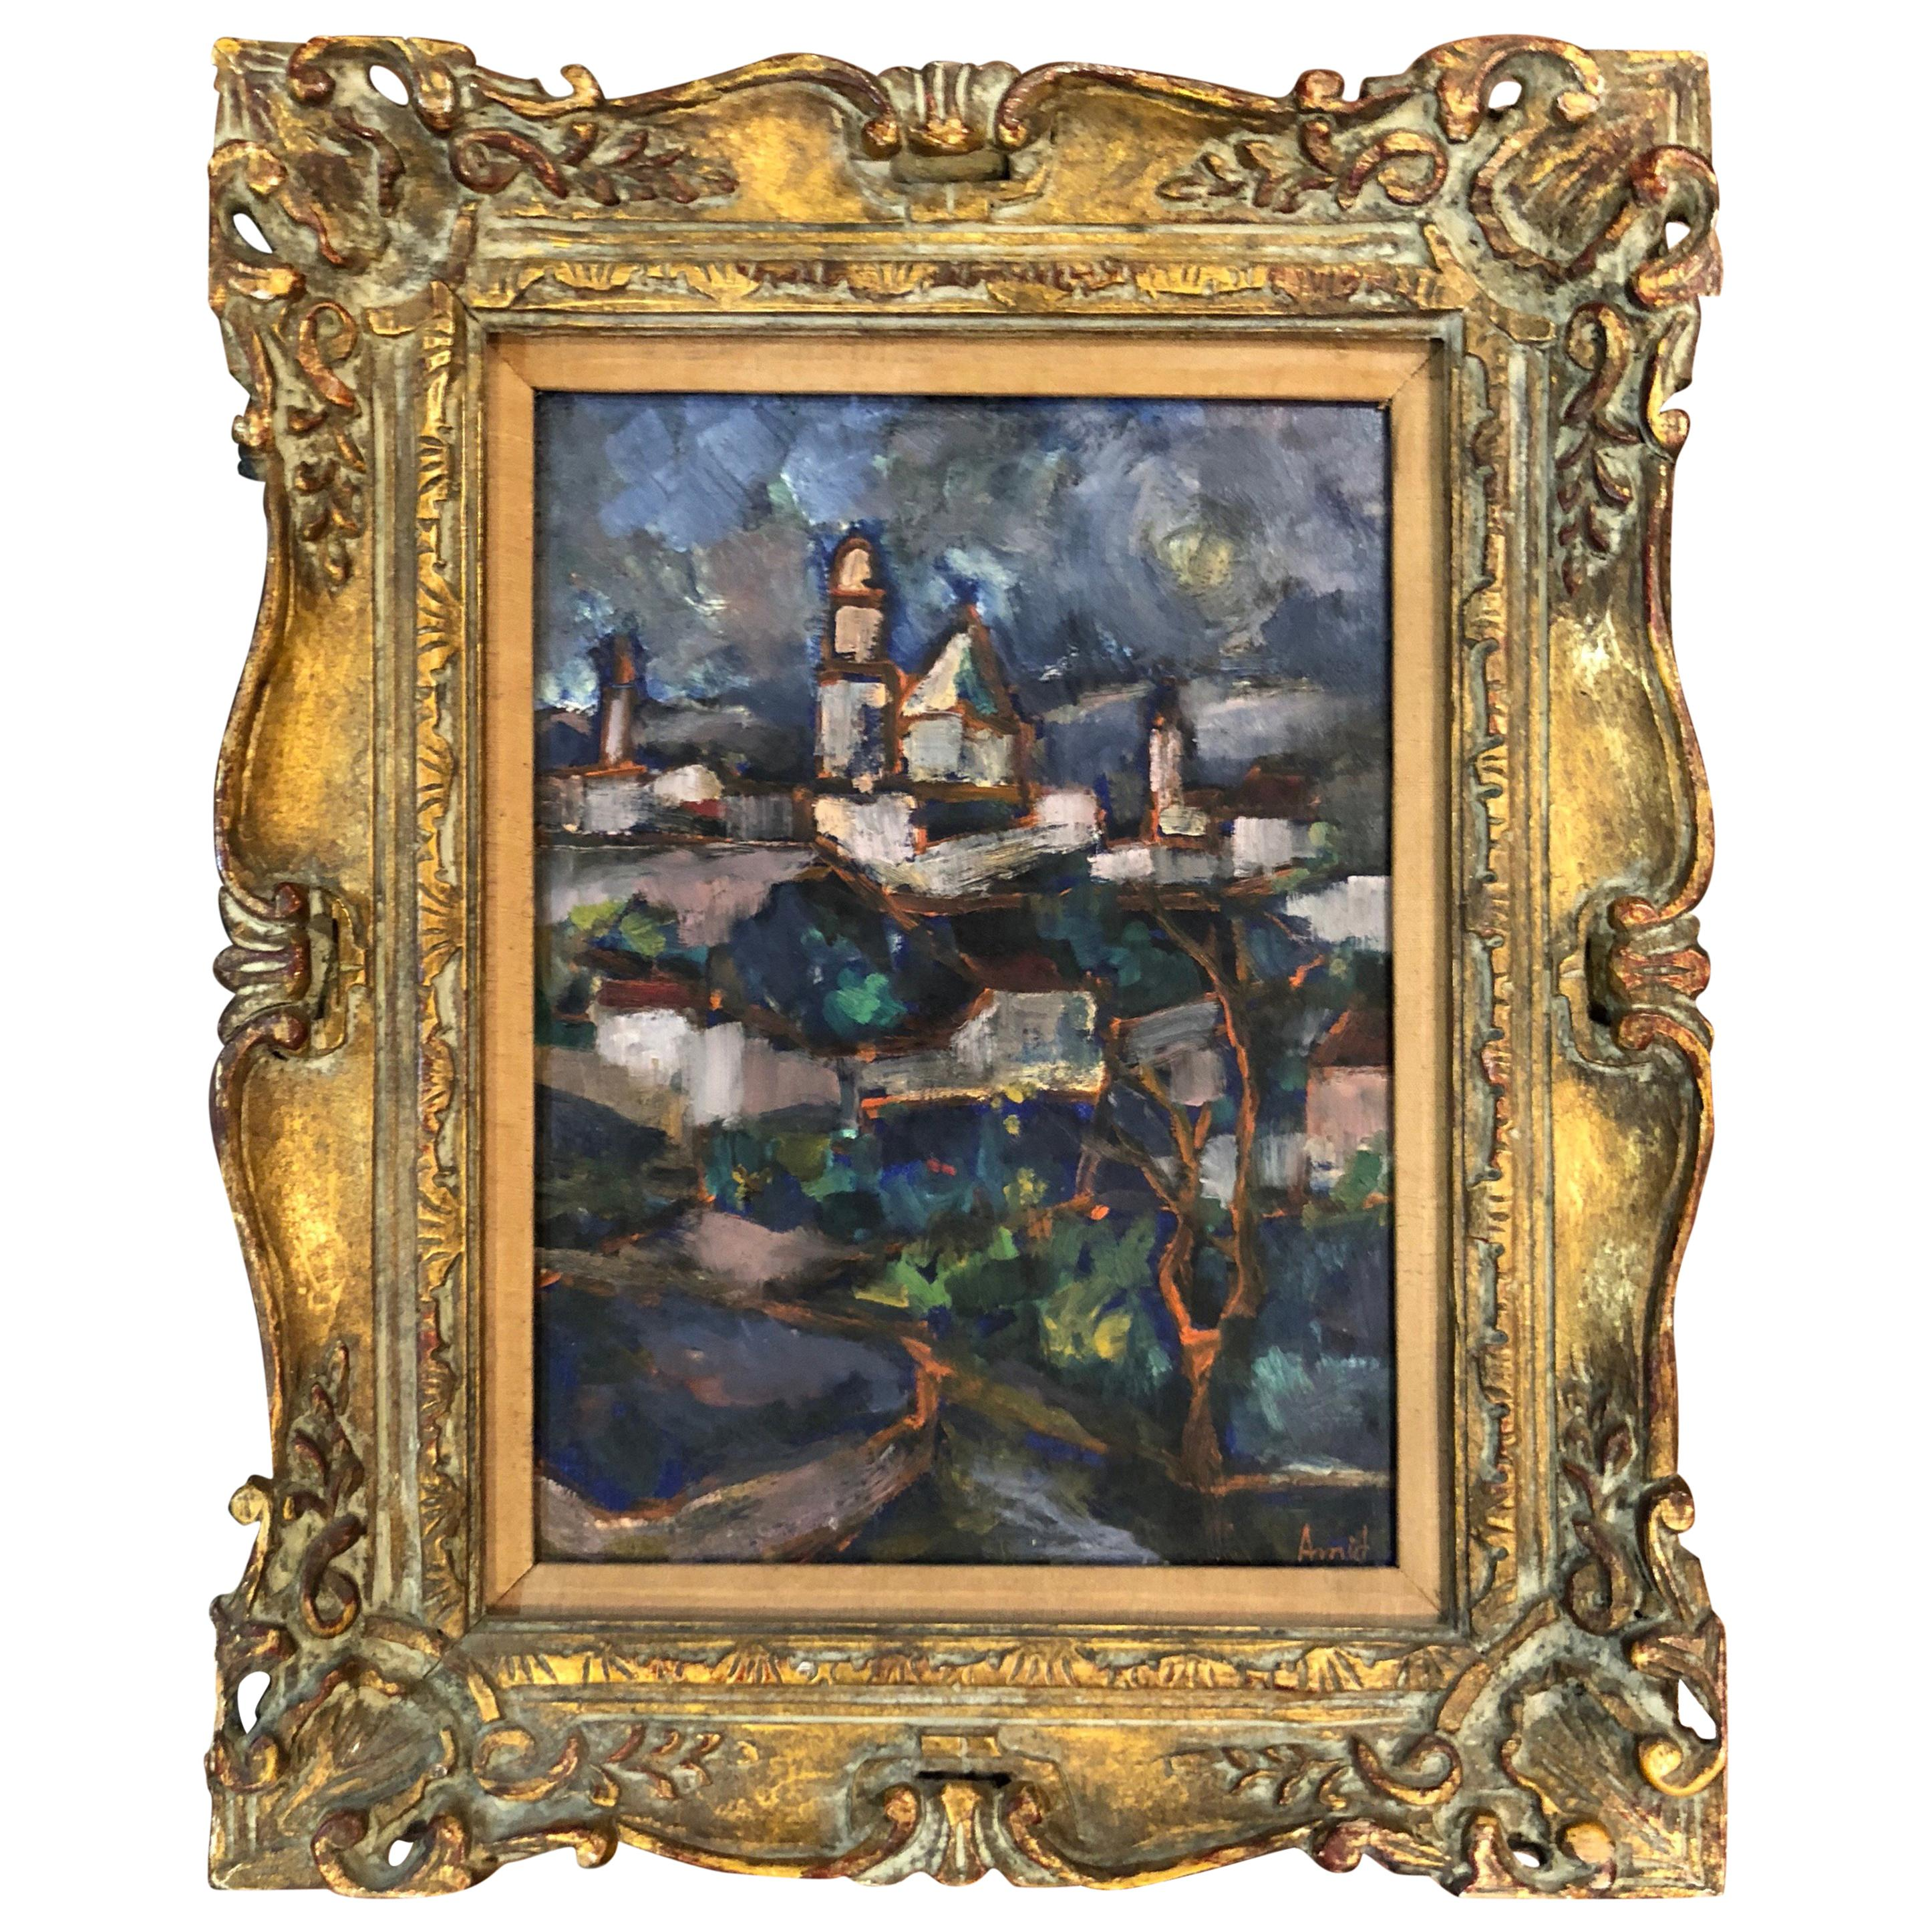 Impressionist Oil on Board by Asher Amid